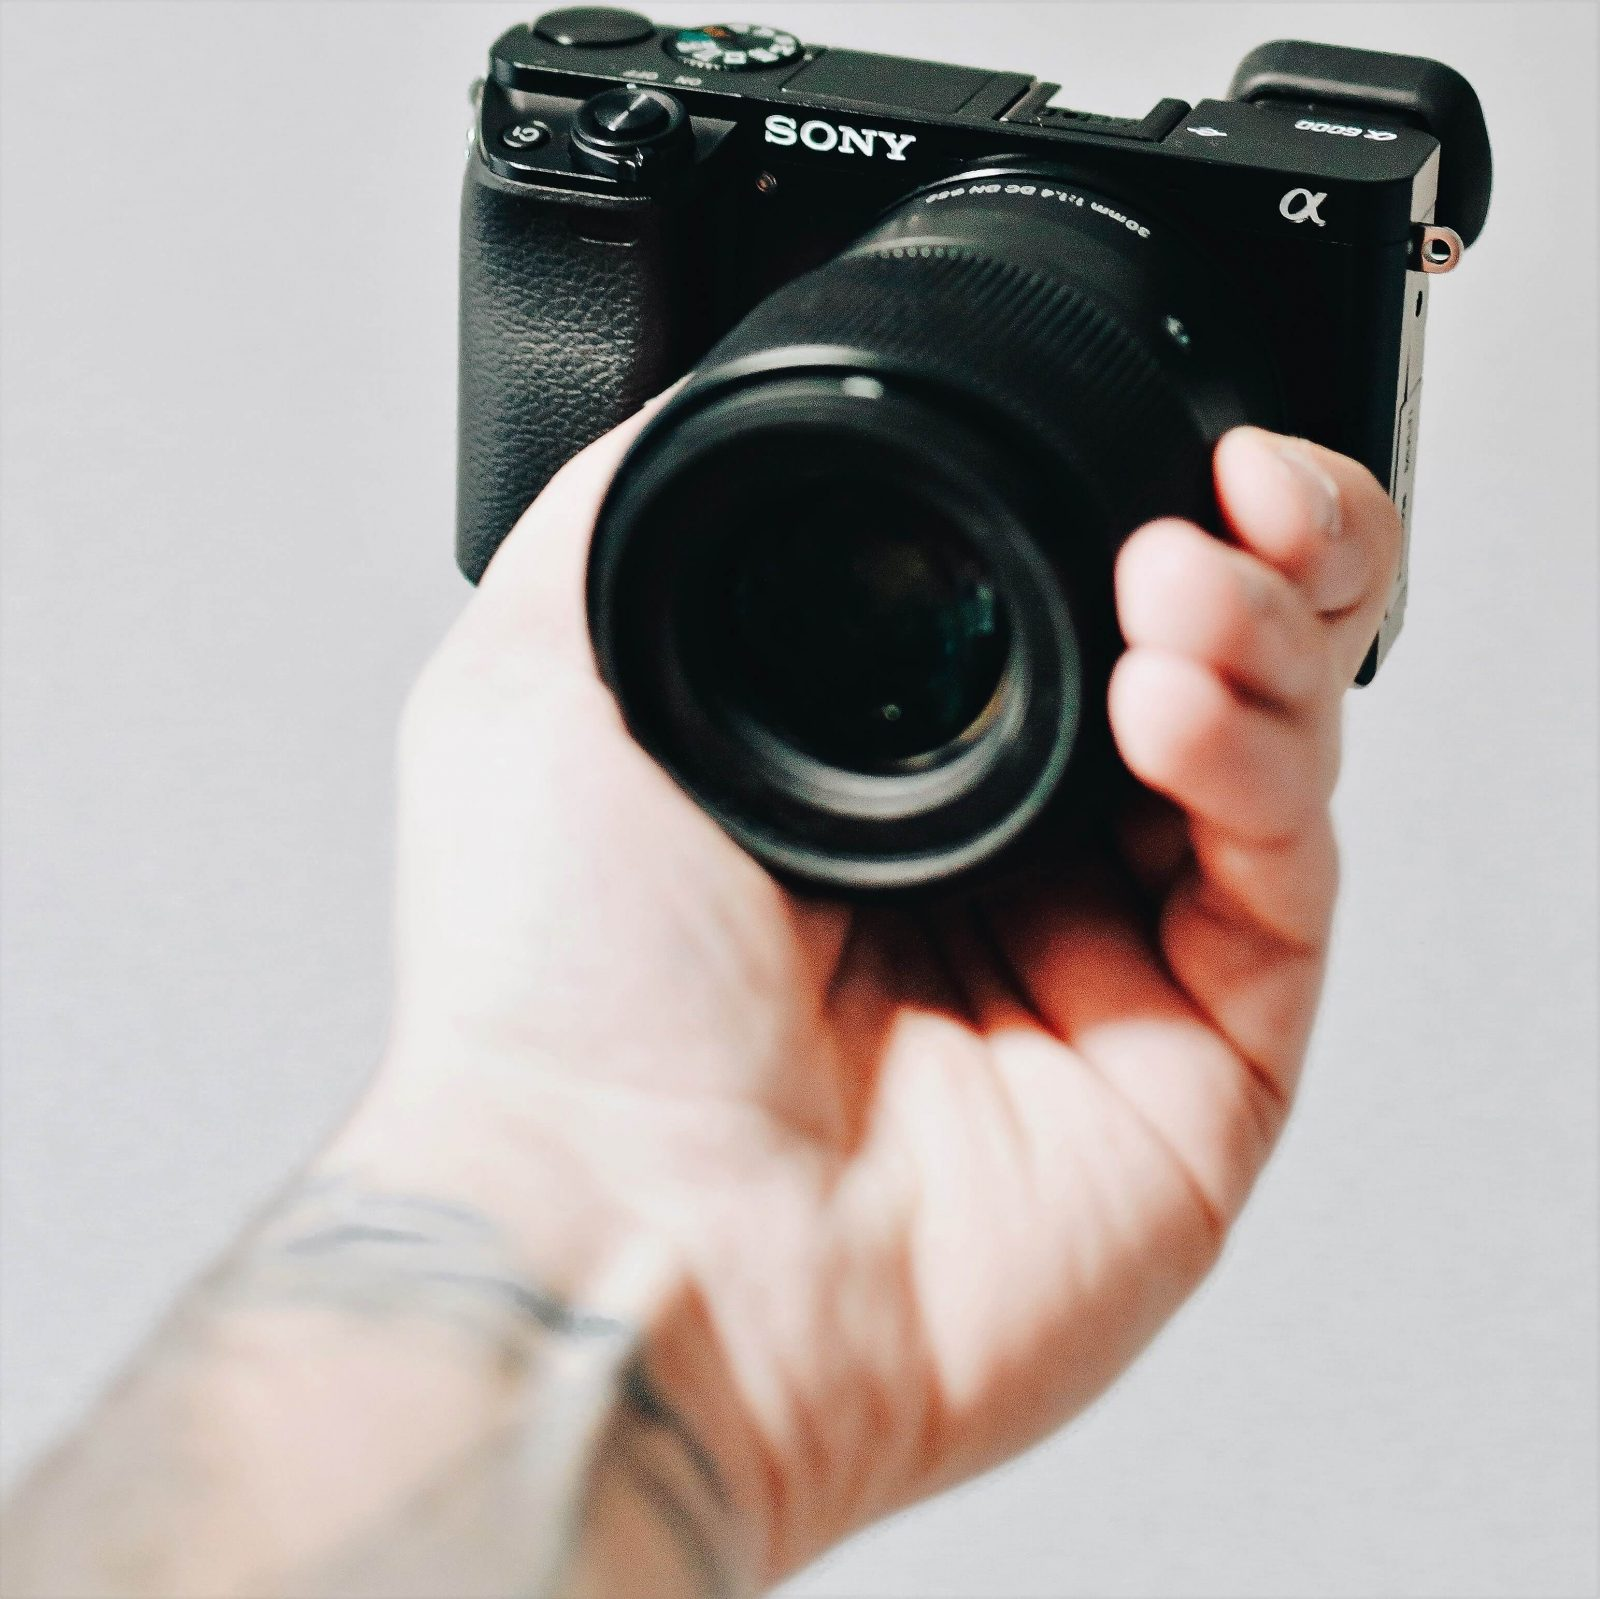 Best Vlogging Camera 2020.Top 5 Best Sony Vlogging Cameras 2020 3 Is Almost Free